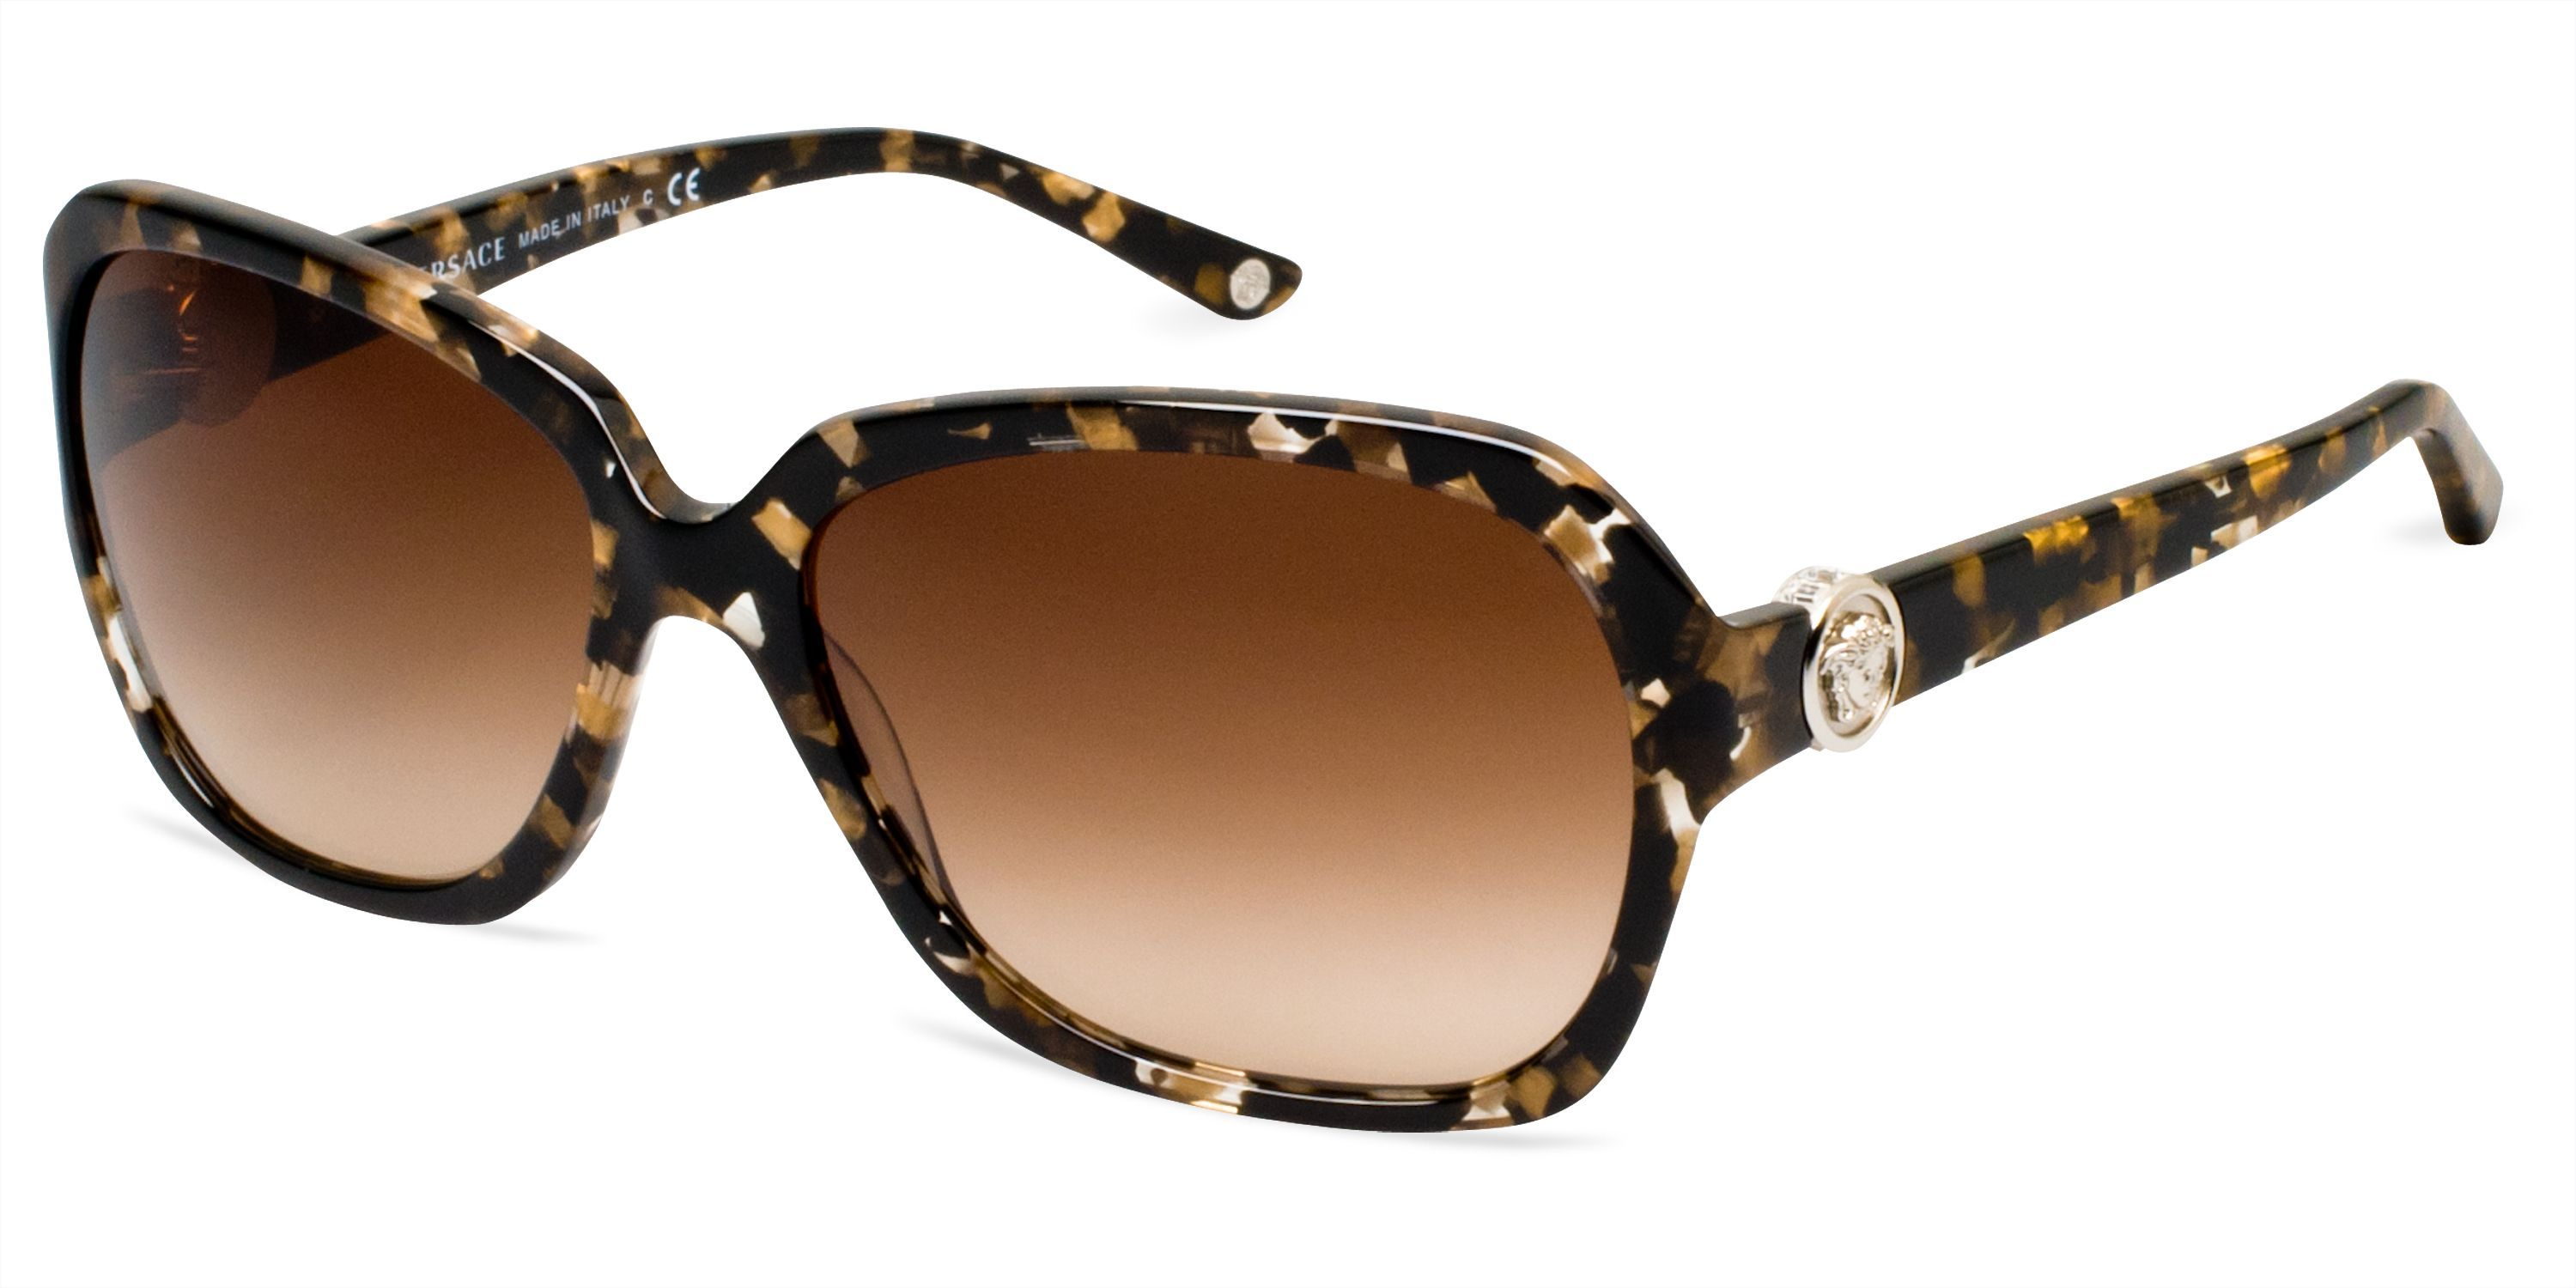 93ec3da2d9 VERSACE VE4218B - Repin your favorite frame and win a USD300 LensCrafters  gift certificate. Enter  30years30gifts here  www.30years30gift.